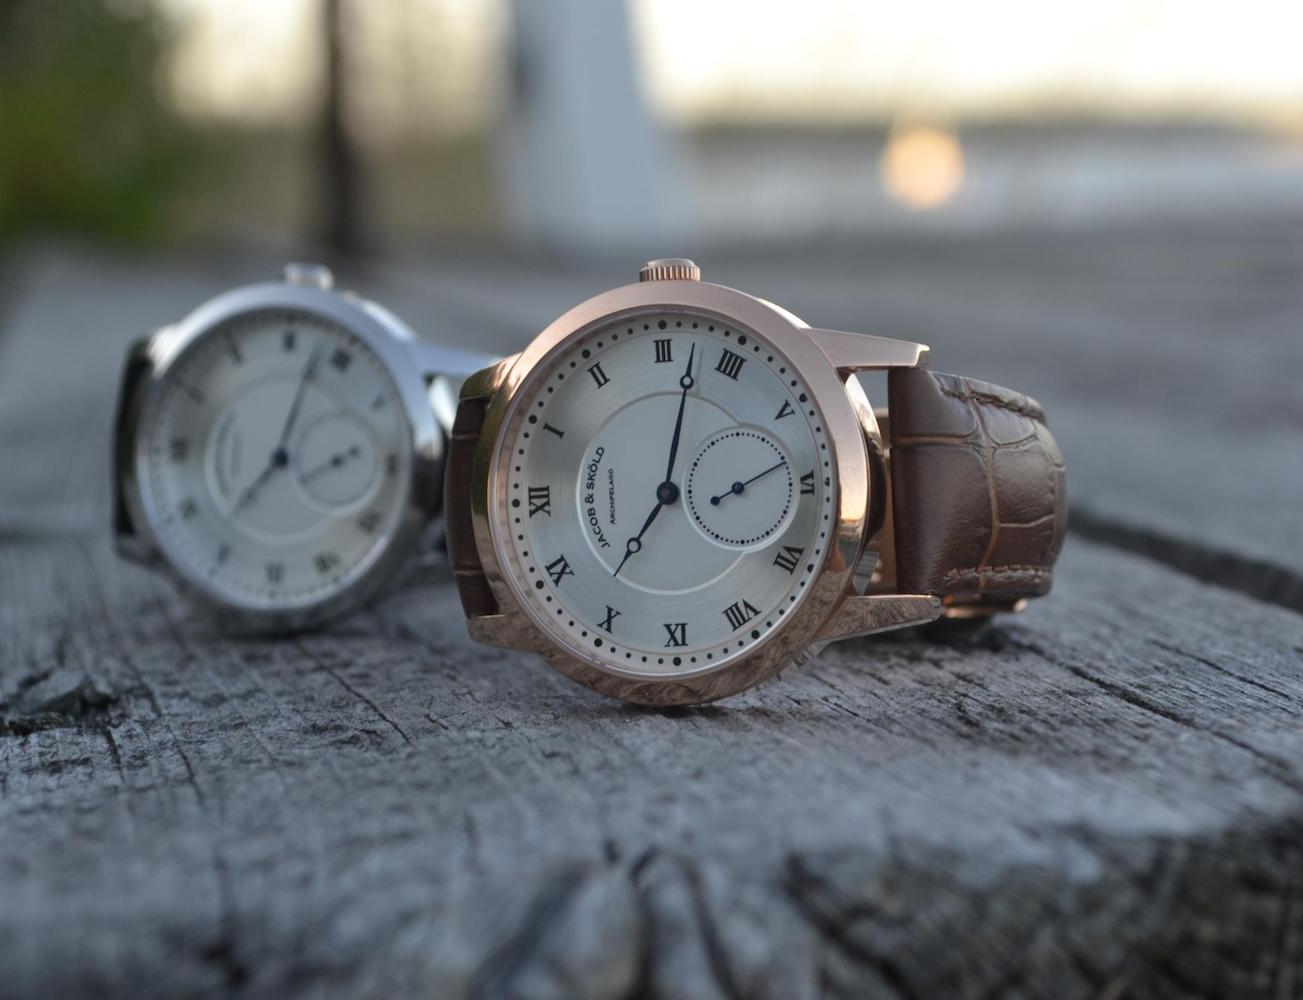 Minimal and Quality Wristwatches From Jacob and Skoeld